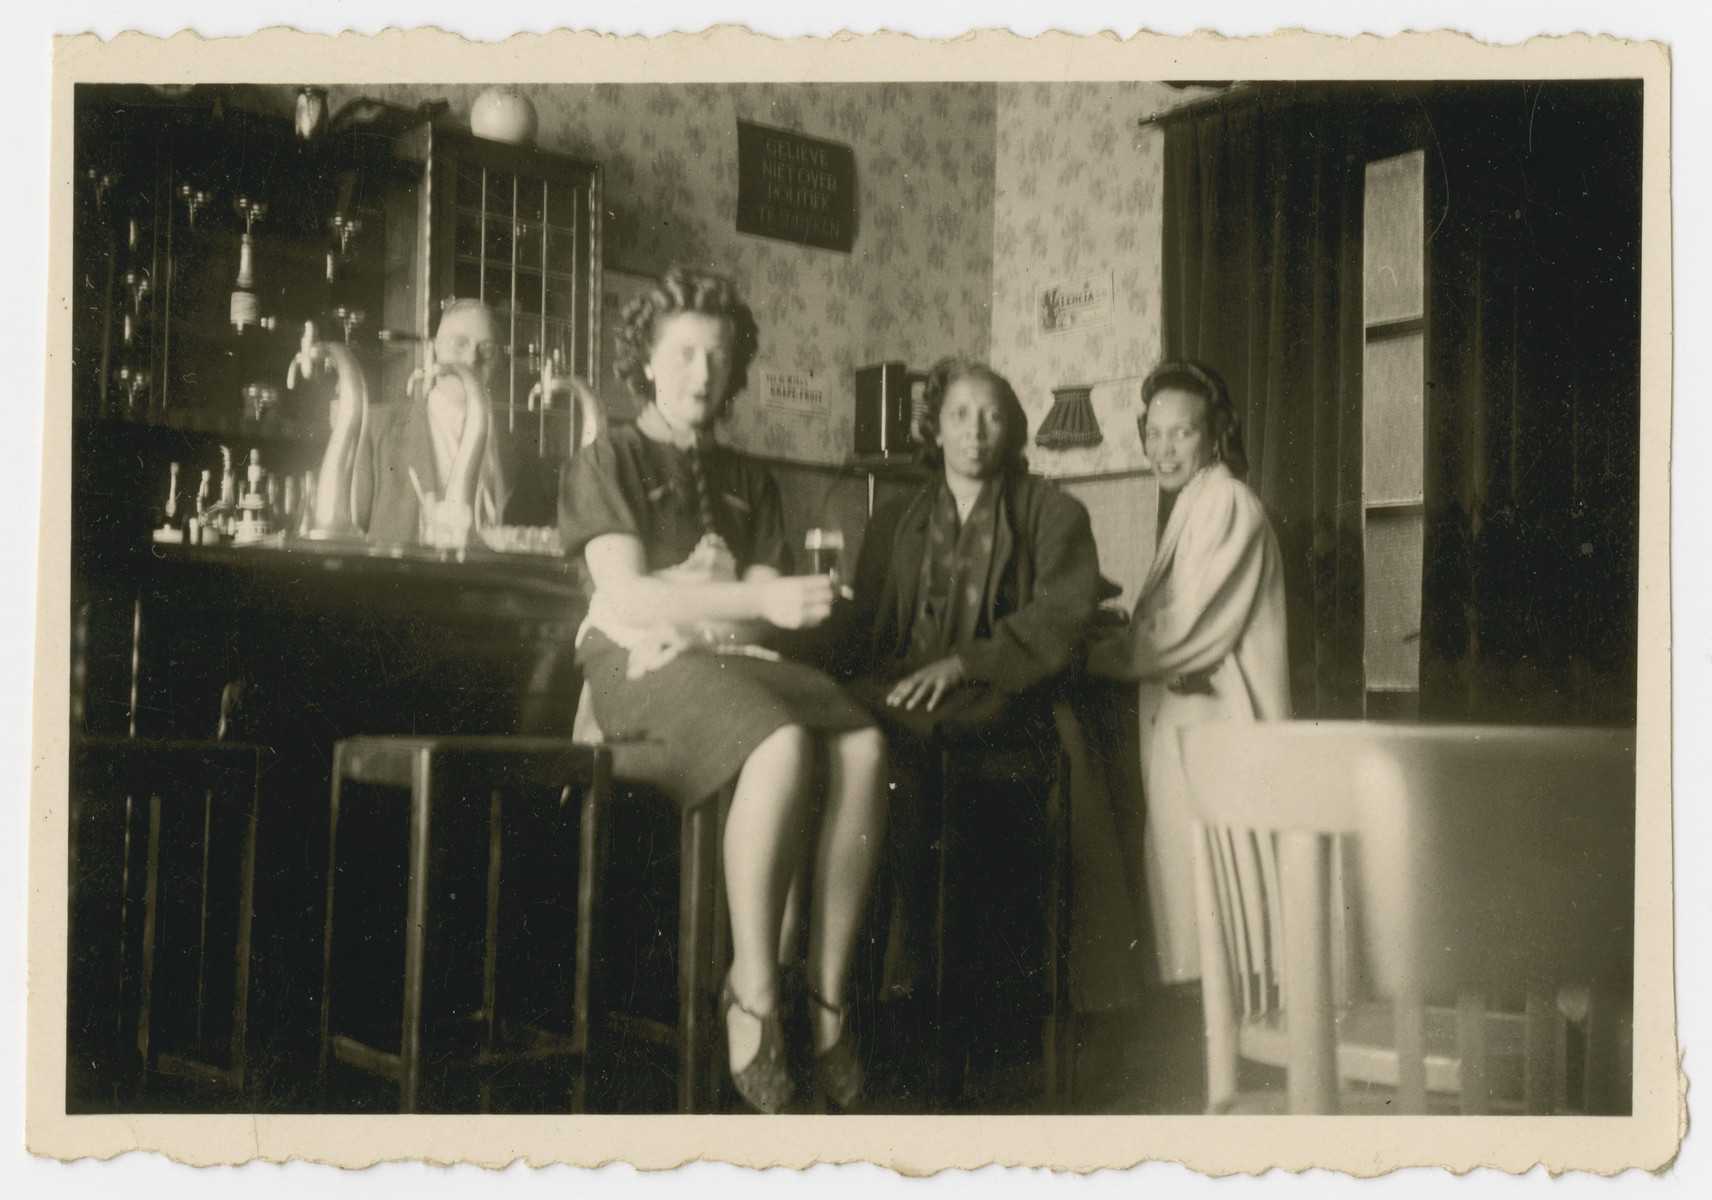 Ida Johnson and two friends gather by a bar in The Hague.